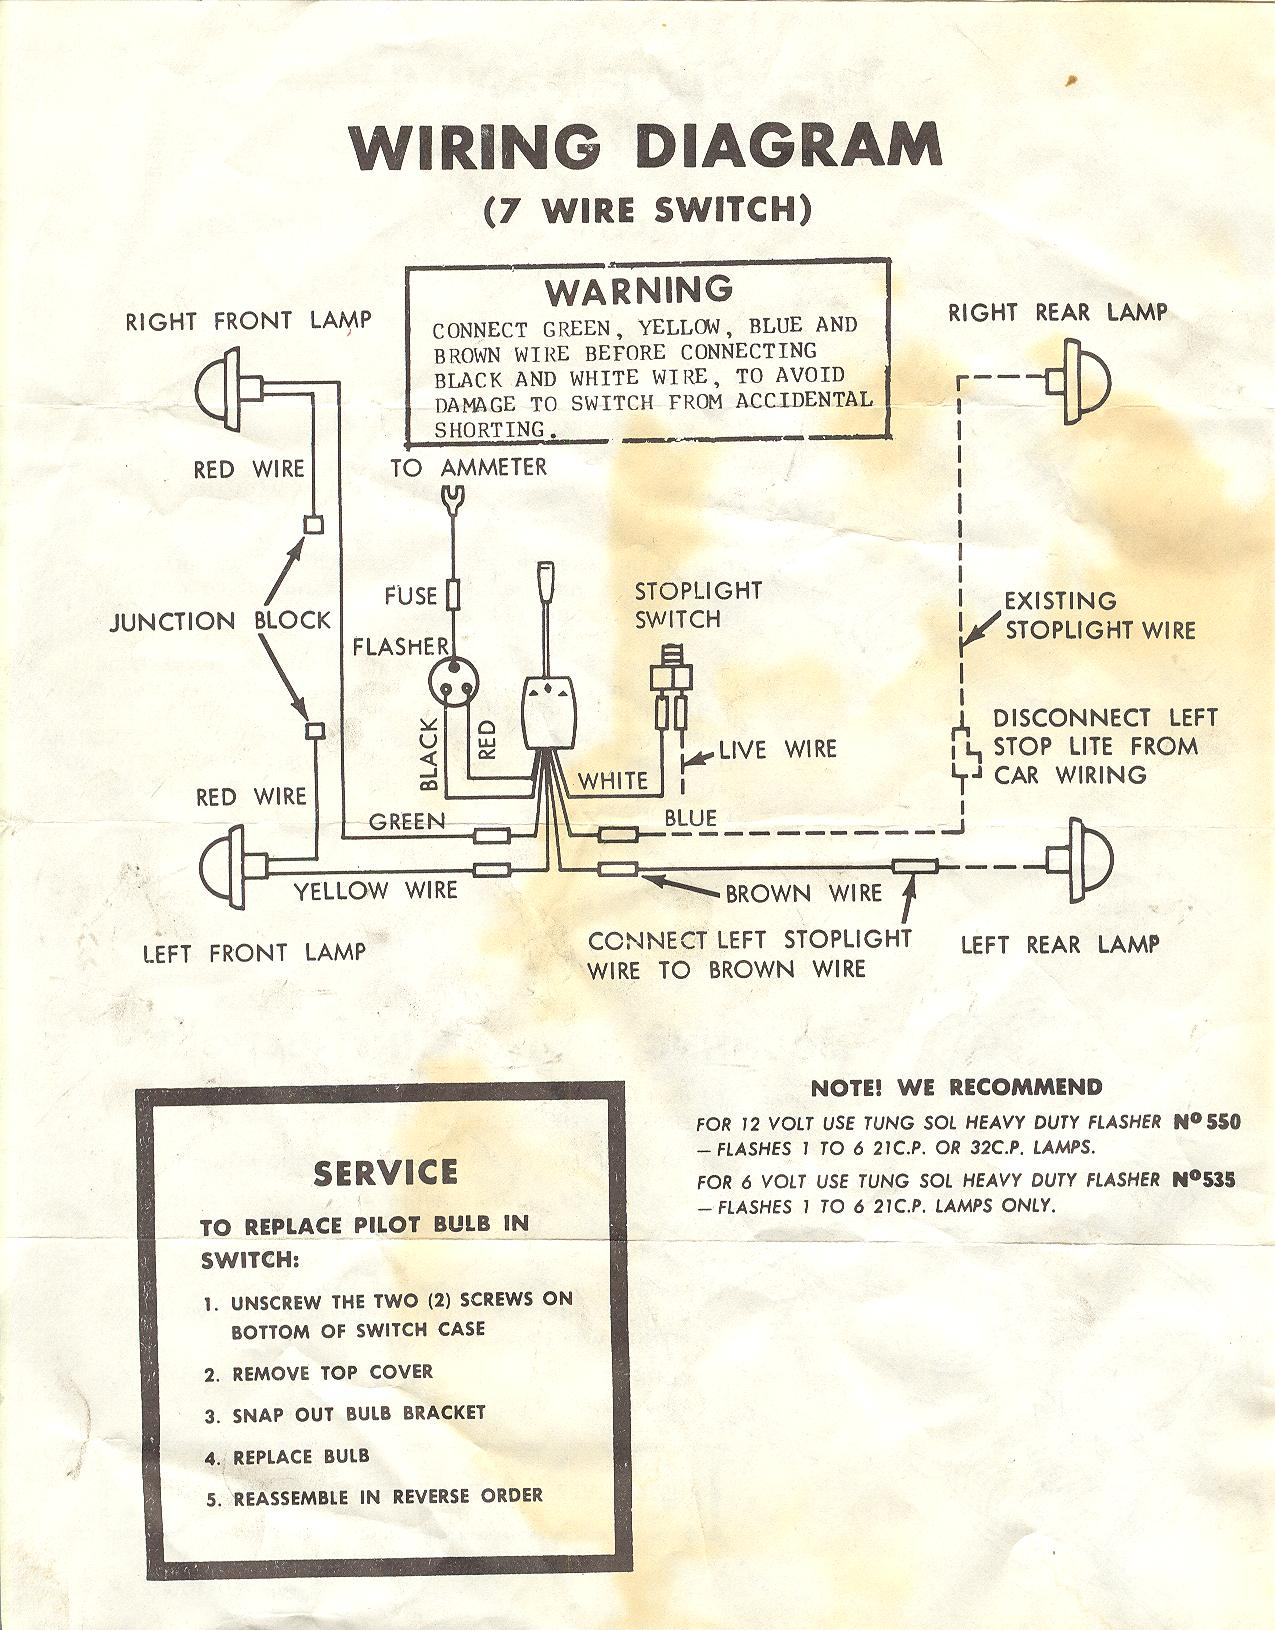 need some help old napa turn signals wiring diagram the h a m b Aftermarket Turn Signal Wiring Diagram napa turn signal switch01 002 jpg aftermarket turn signal wiring diagram